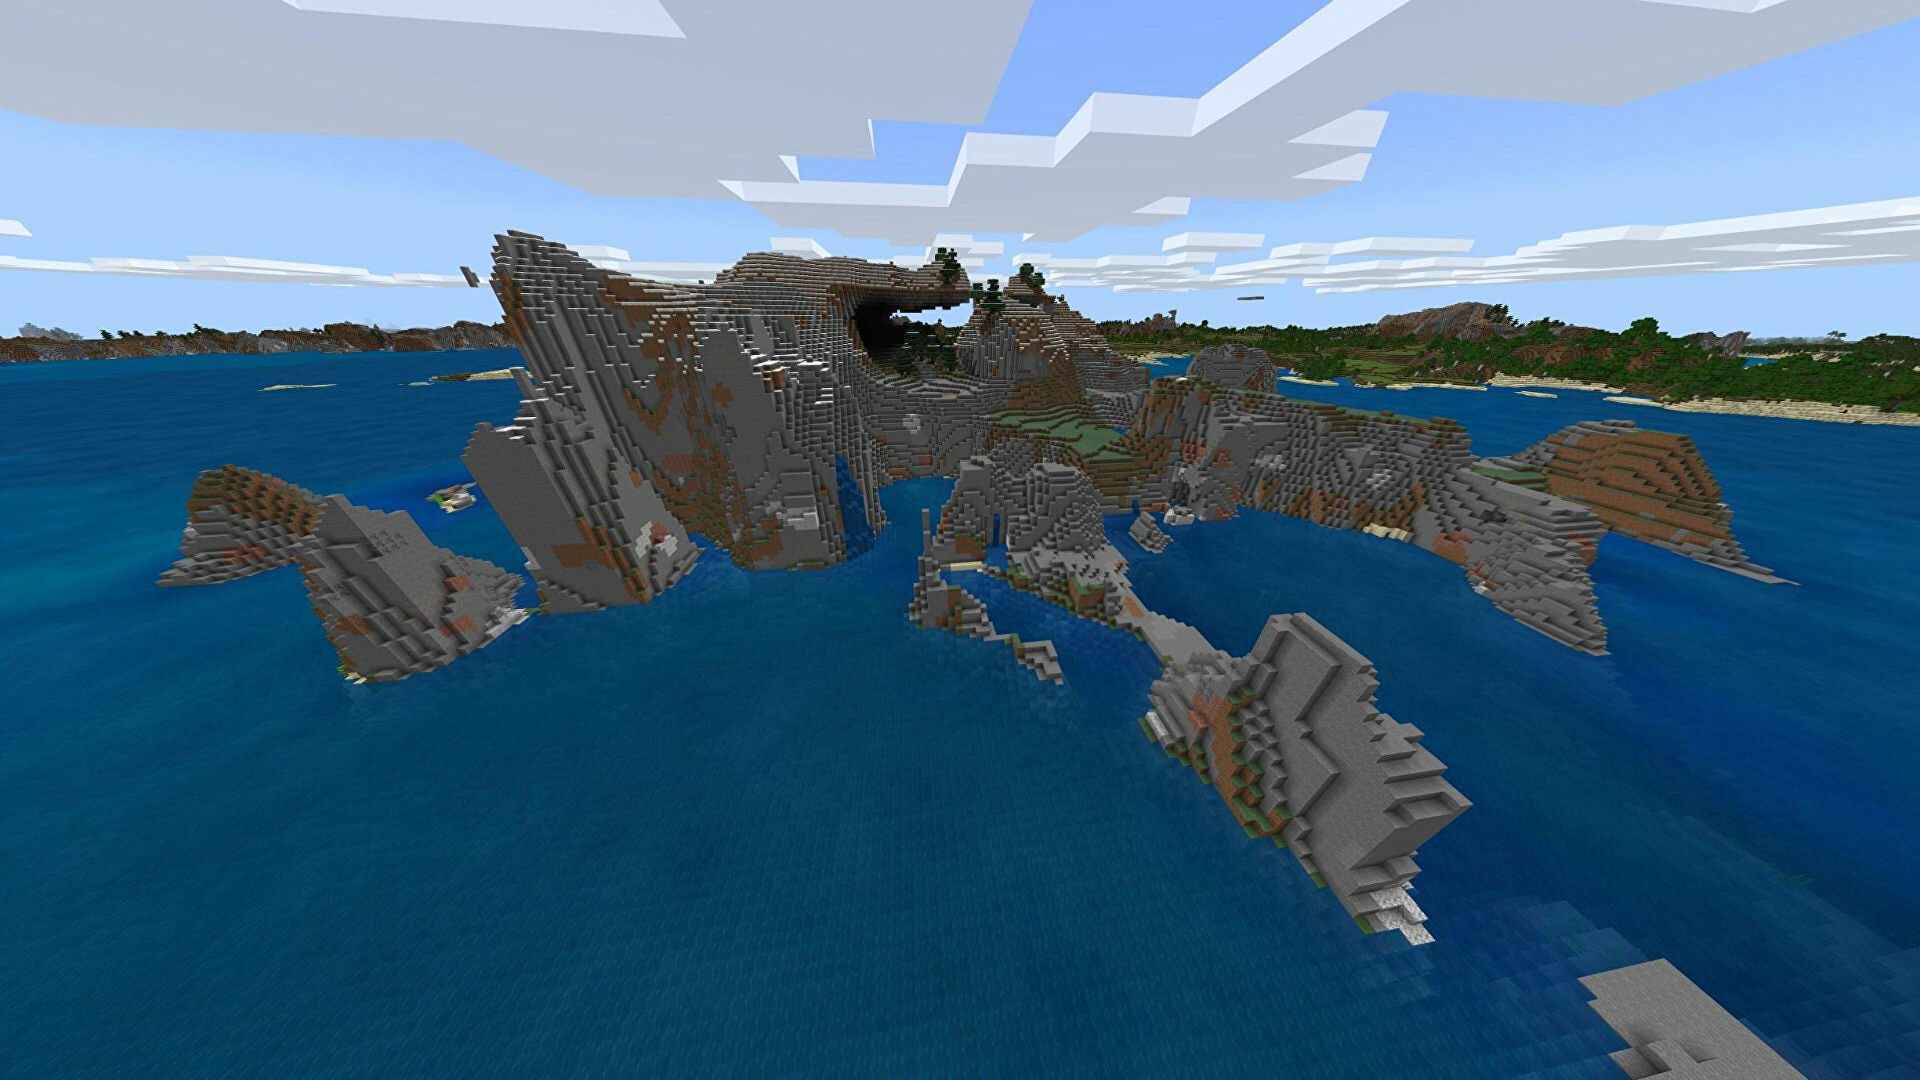 A Minecraft Bedrock screenshot of a new world created with the seed -257277437.